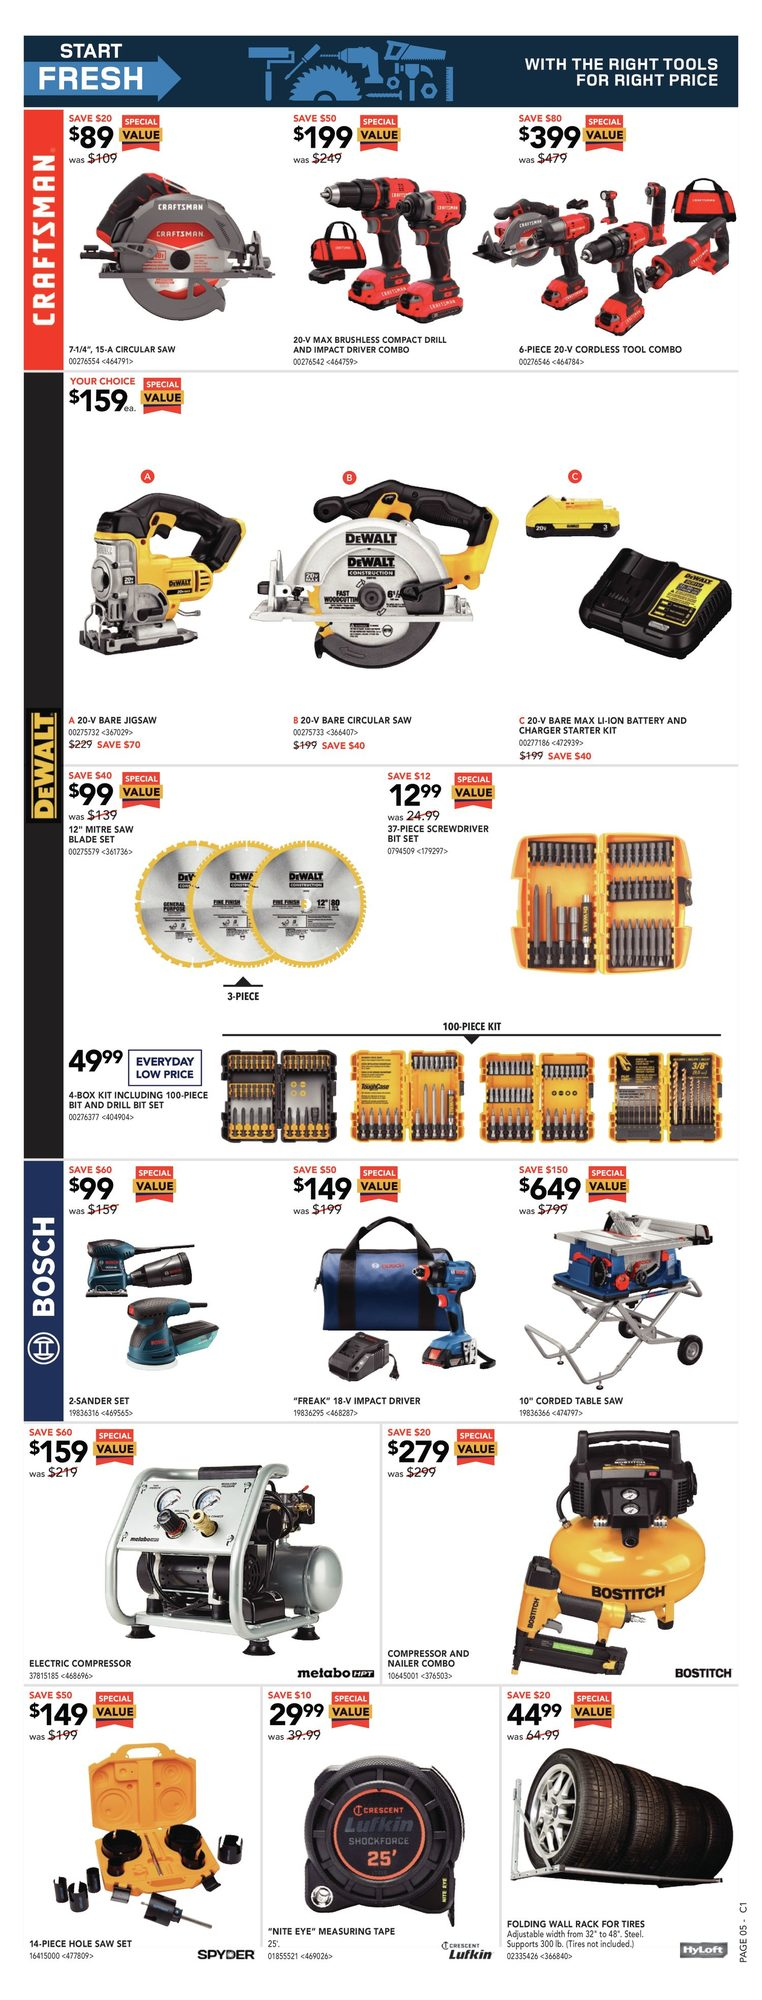 Rona - Weekly Flyer Specials - Page 10